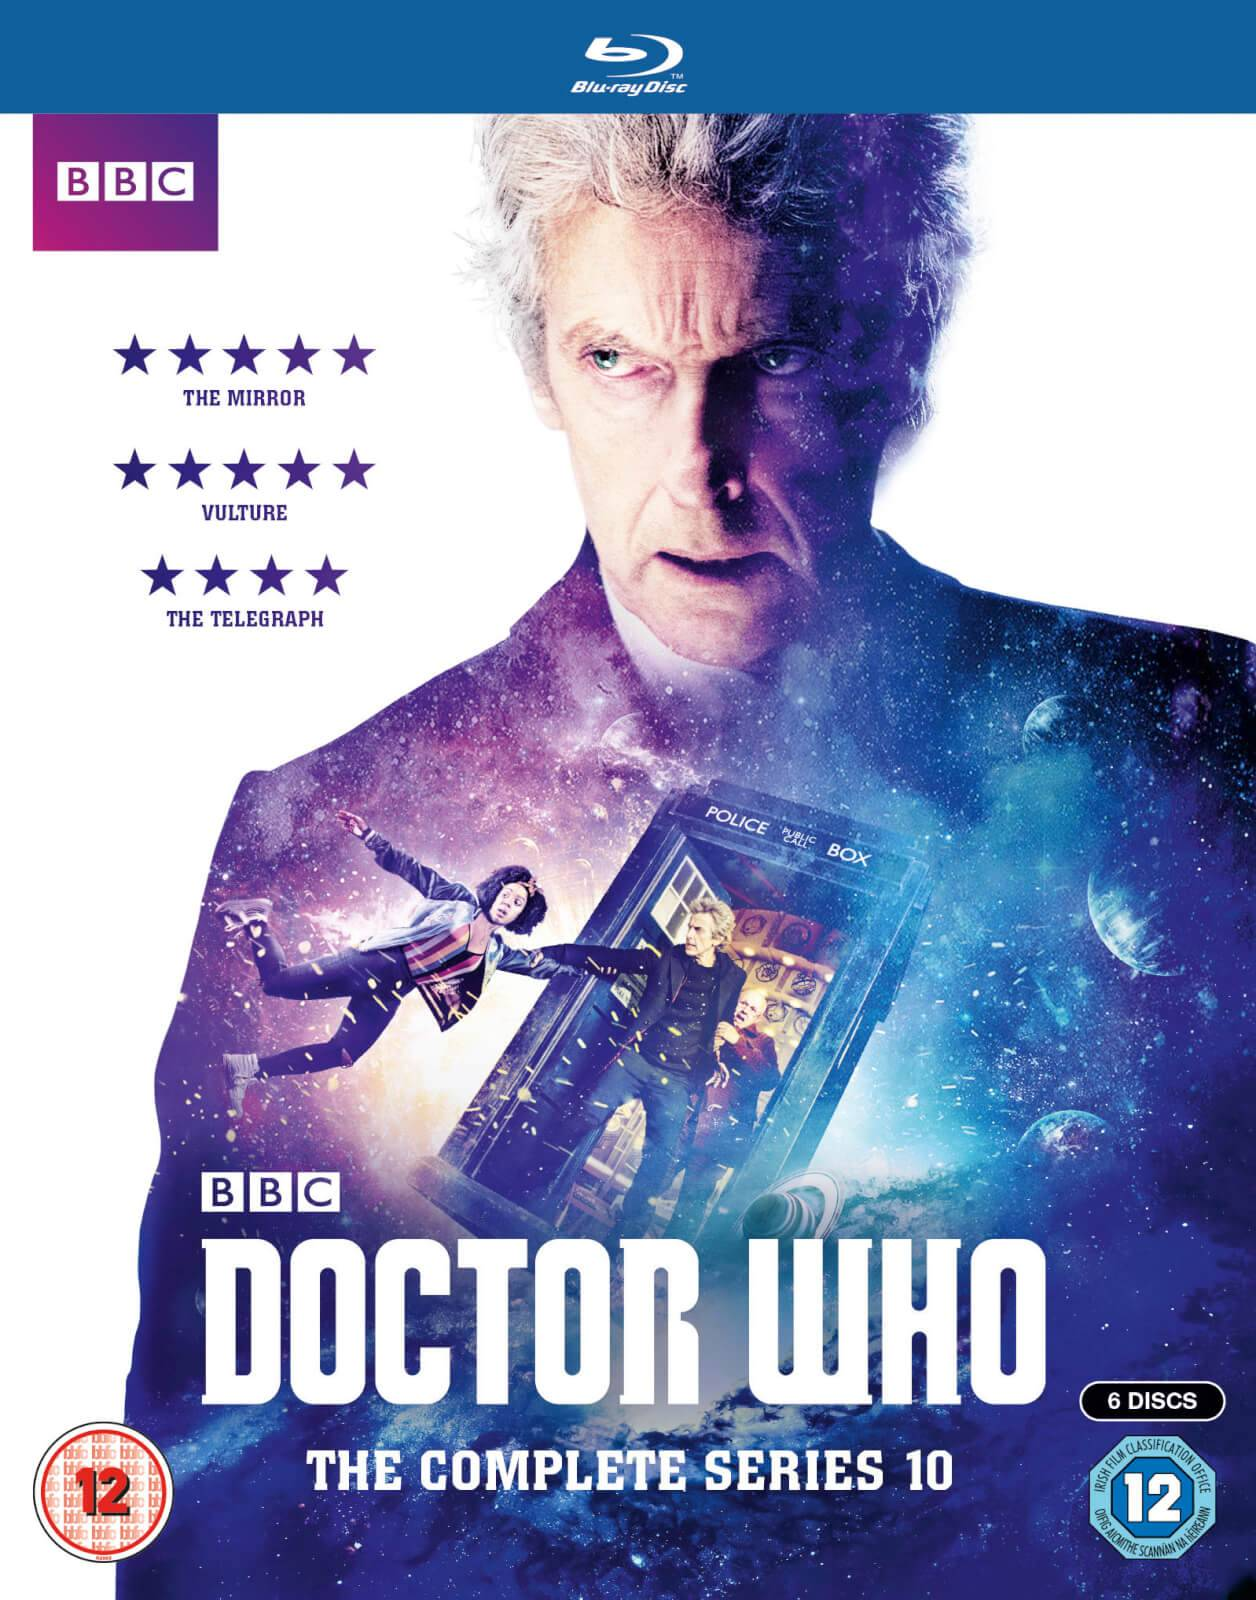 BBC Doctor Who - The Complete Series 10